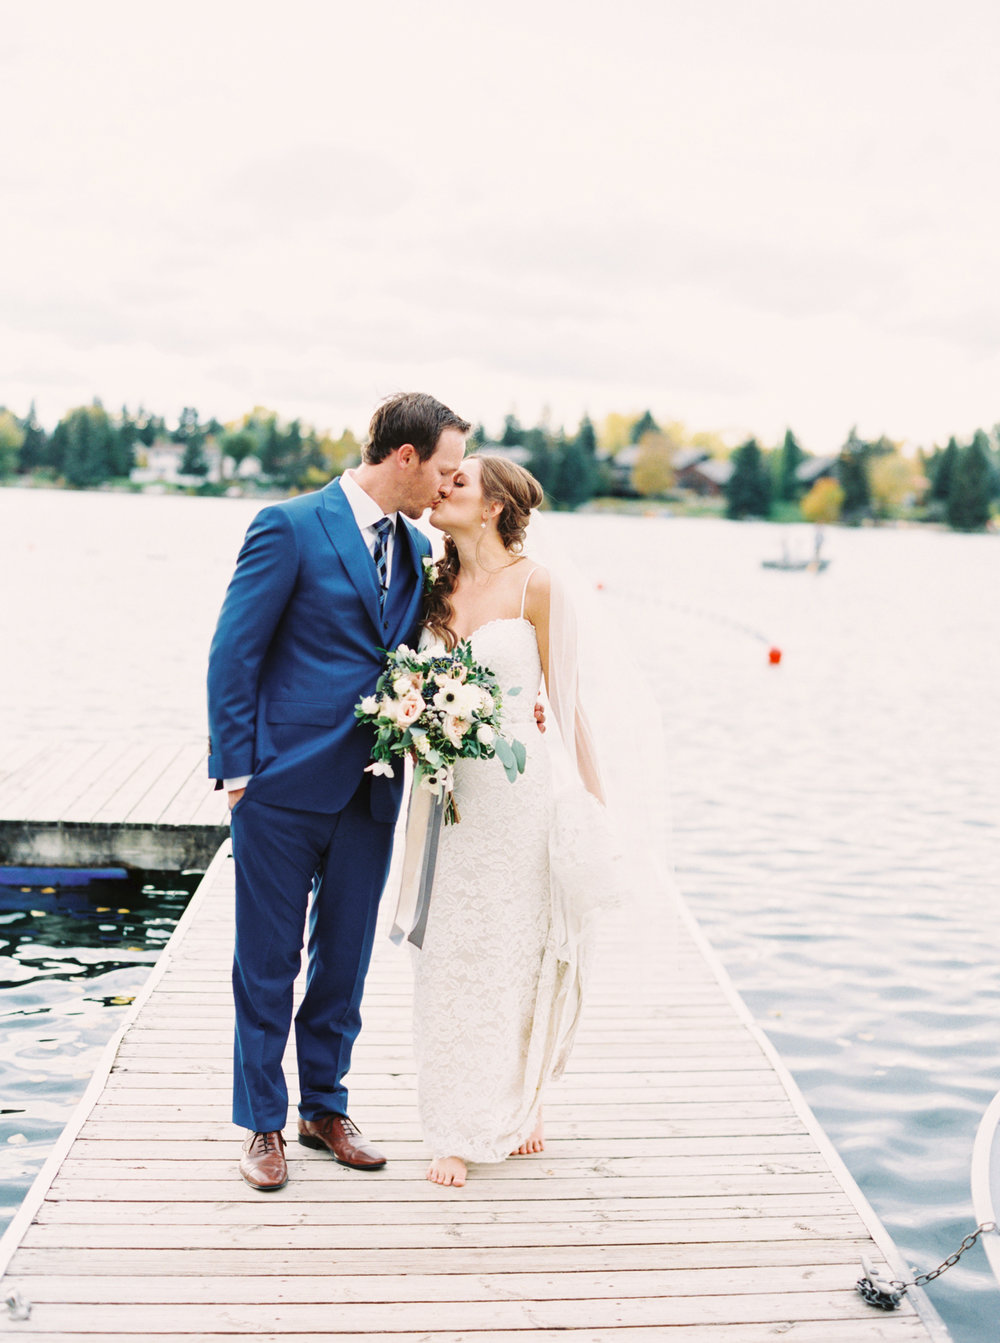 The Lake House Wedding | Calgary Wedding | Calgary Wedding Planner | Milton Photography | Stacey Foley Design | Canmore Wedding Planner